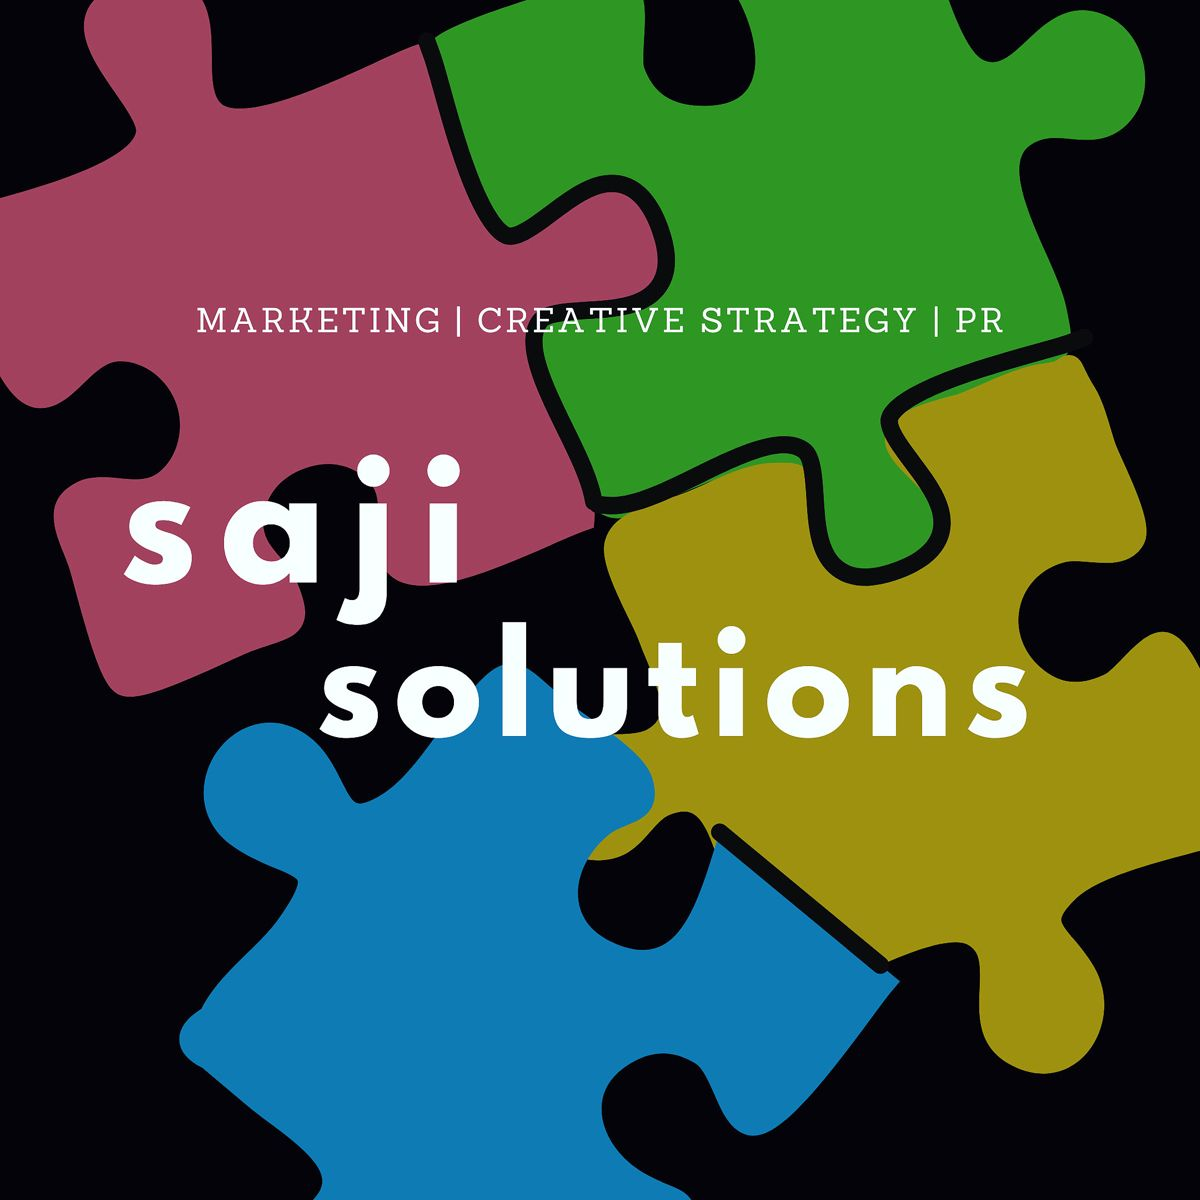 Saji Solutions is a niche marketing management, creative strategy and digital presence agency. We help select industries with media + strategy to help you increase revenue and engagement. Saji will always be your solution. Learn more by joining our email list! 🧩🧩🧩 #sajisolved #marketingagency #marketingmanagement #creativestrategy #digitalpresence #growthhacking #buildyourbrand #creativeagency #digitalmarketing #smallbizlife #smallbiztips #smallbizlove